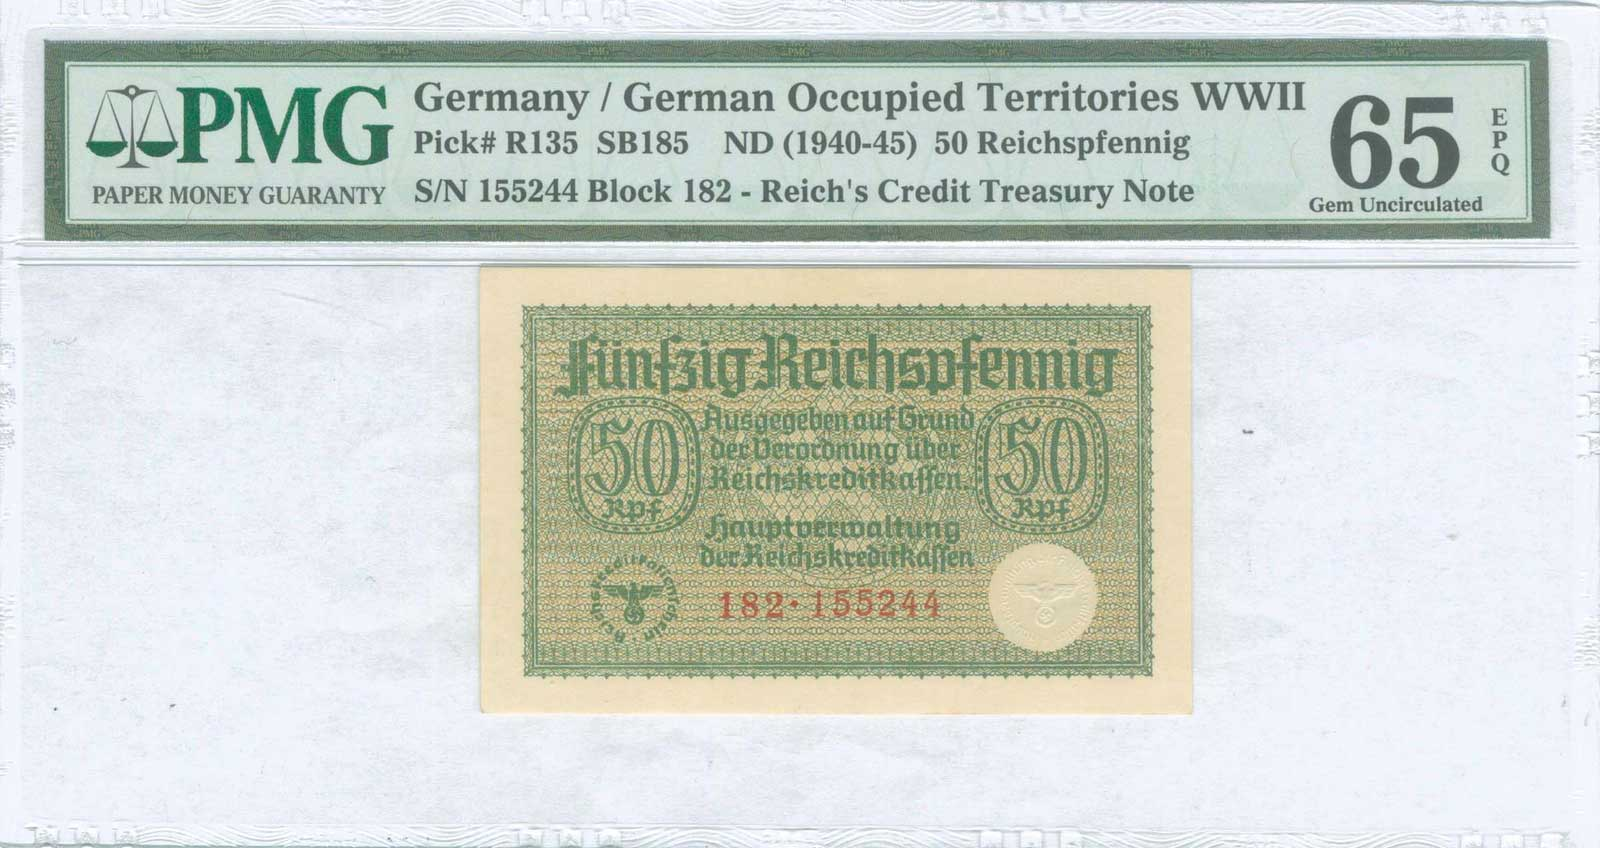 Lot 9407 - GREECE-  PAPER MONEY - BANKNOTES german occupation wwii -  A. Karamitsos Public & LIVE Bid Auction 610 Coins, Medals & Banknotes